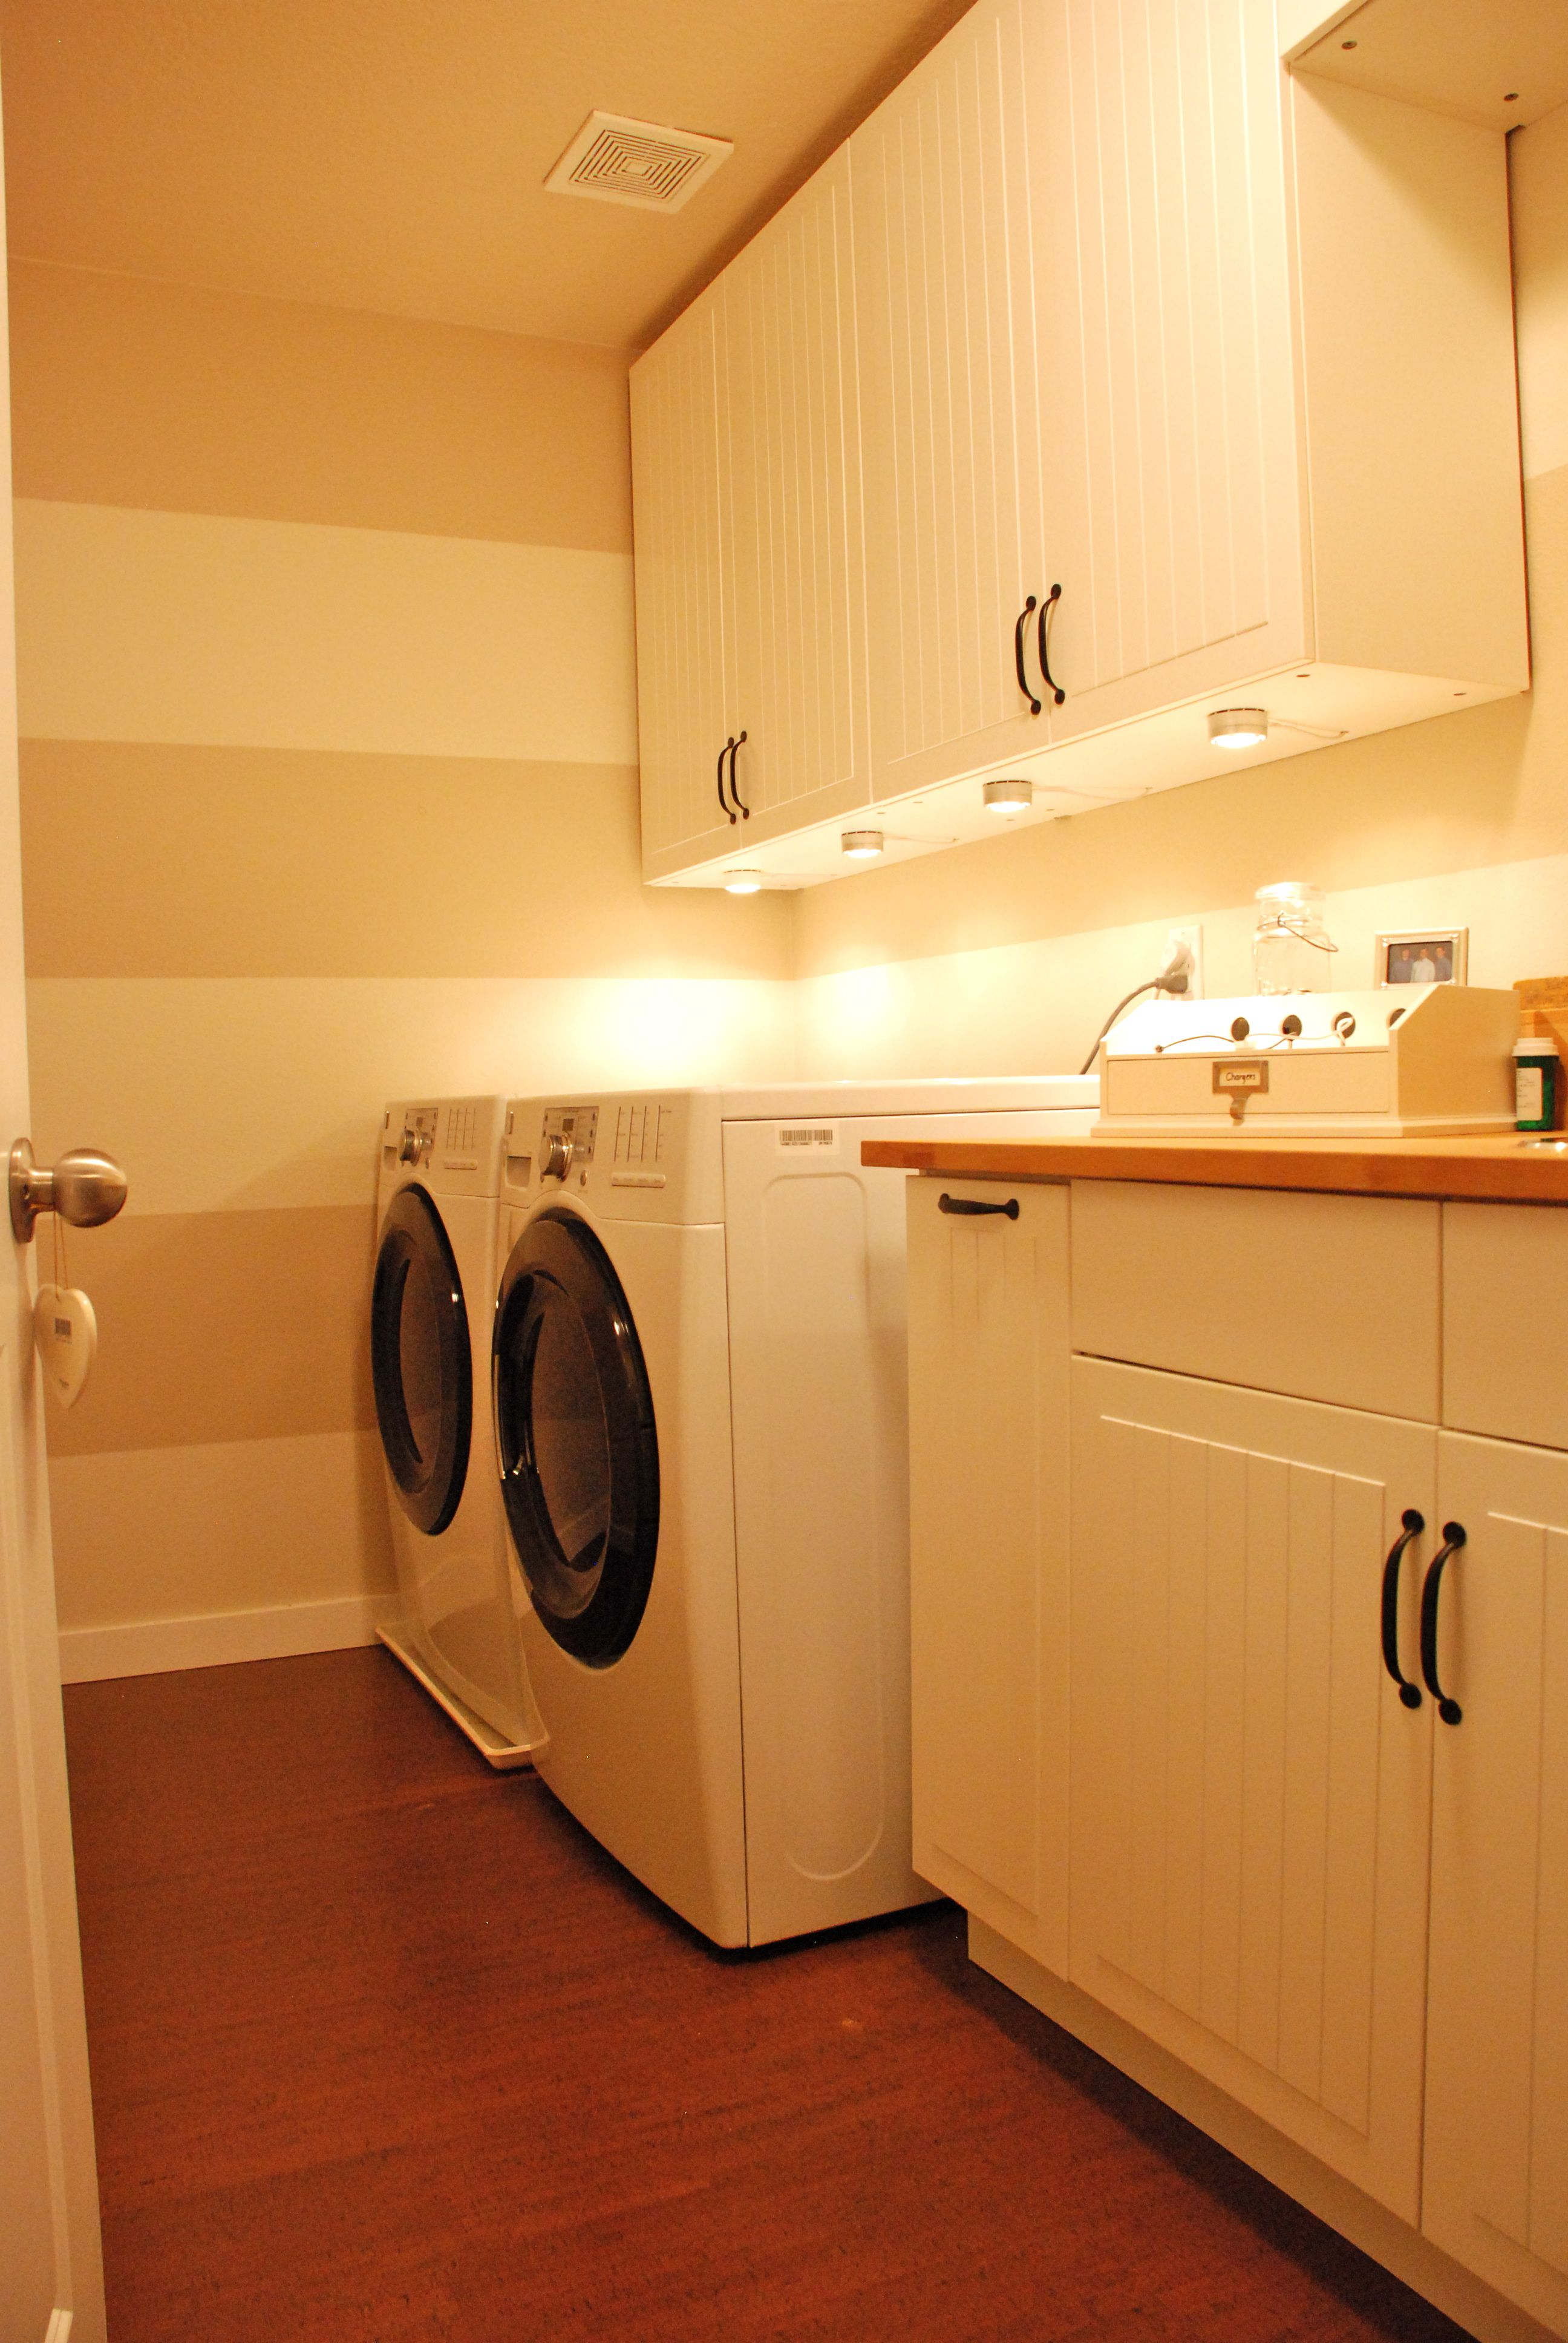 Utility sink · laundry room